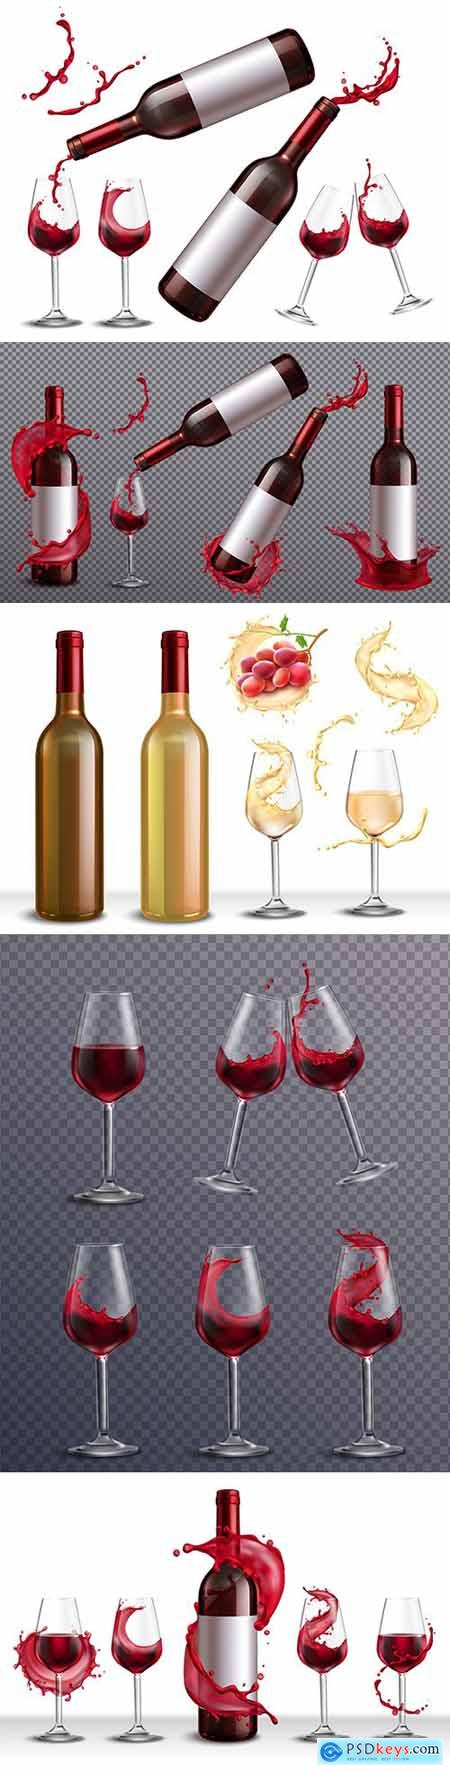 Bottle of red and white wine realistic set with glasses